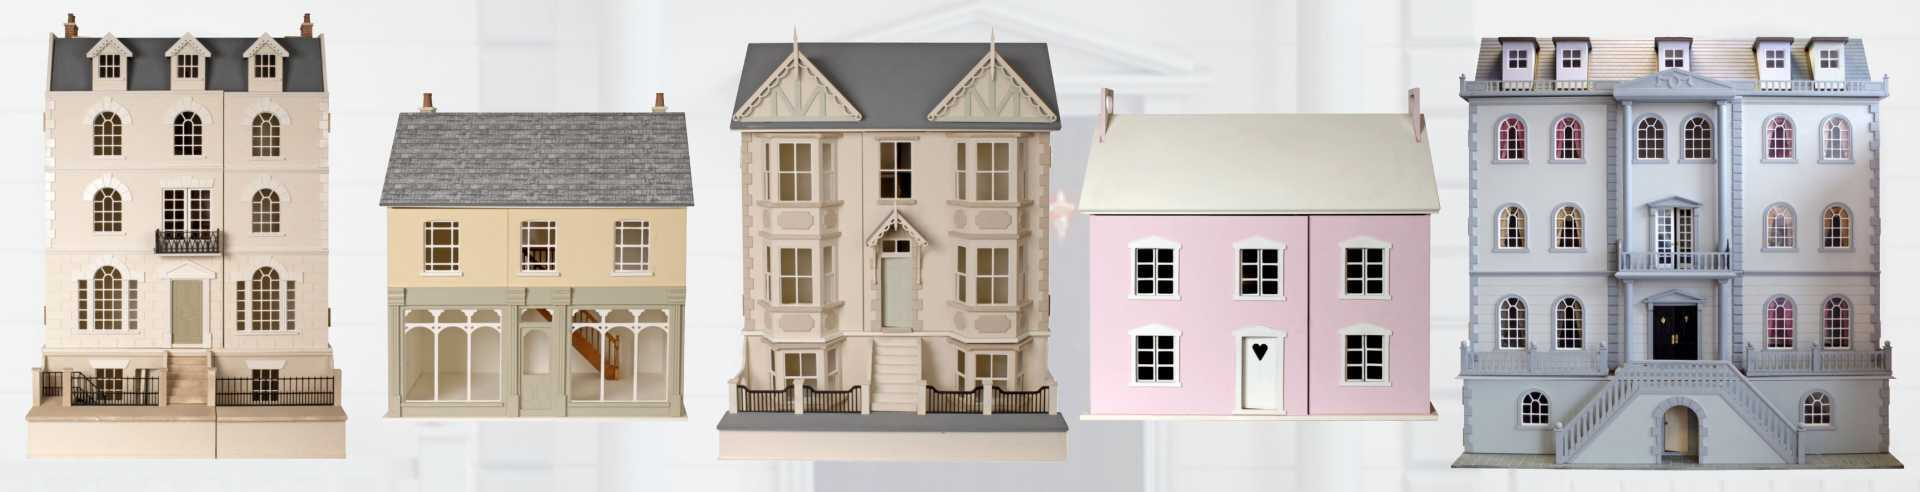 Superb Bromley Craft Products Dolls Houses Lighting Building Wiring Digital Resources Cettecompassionincorg